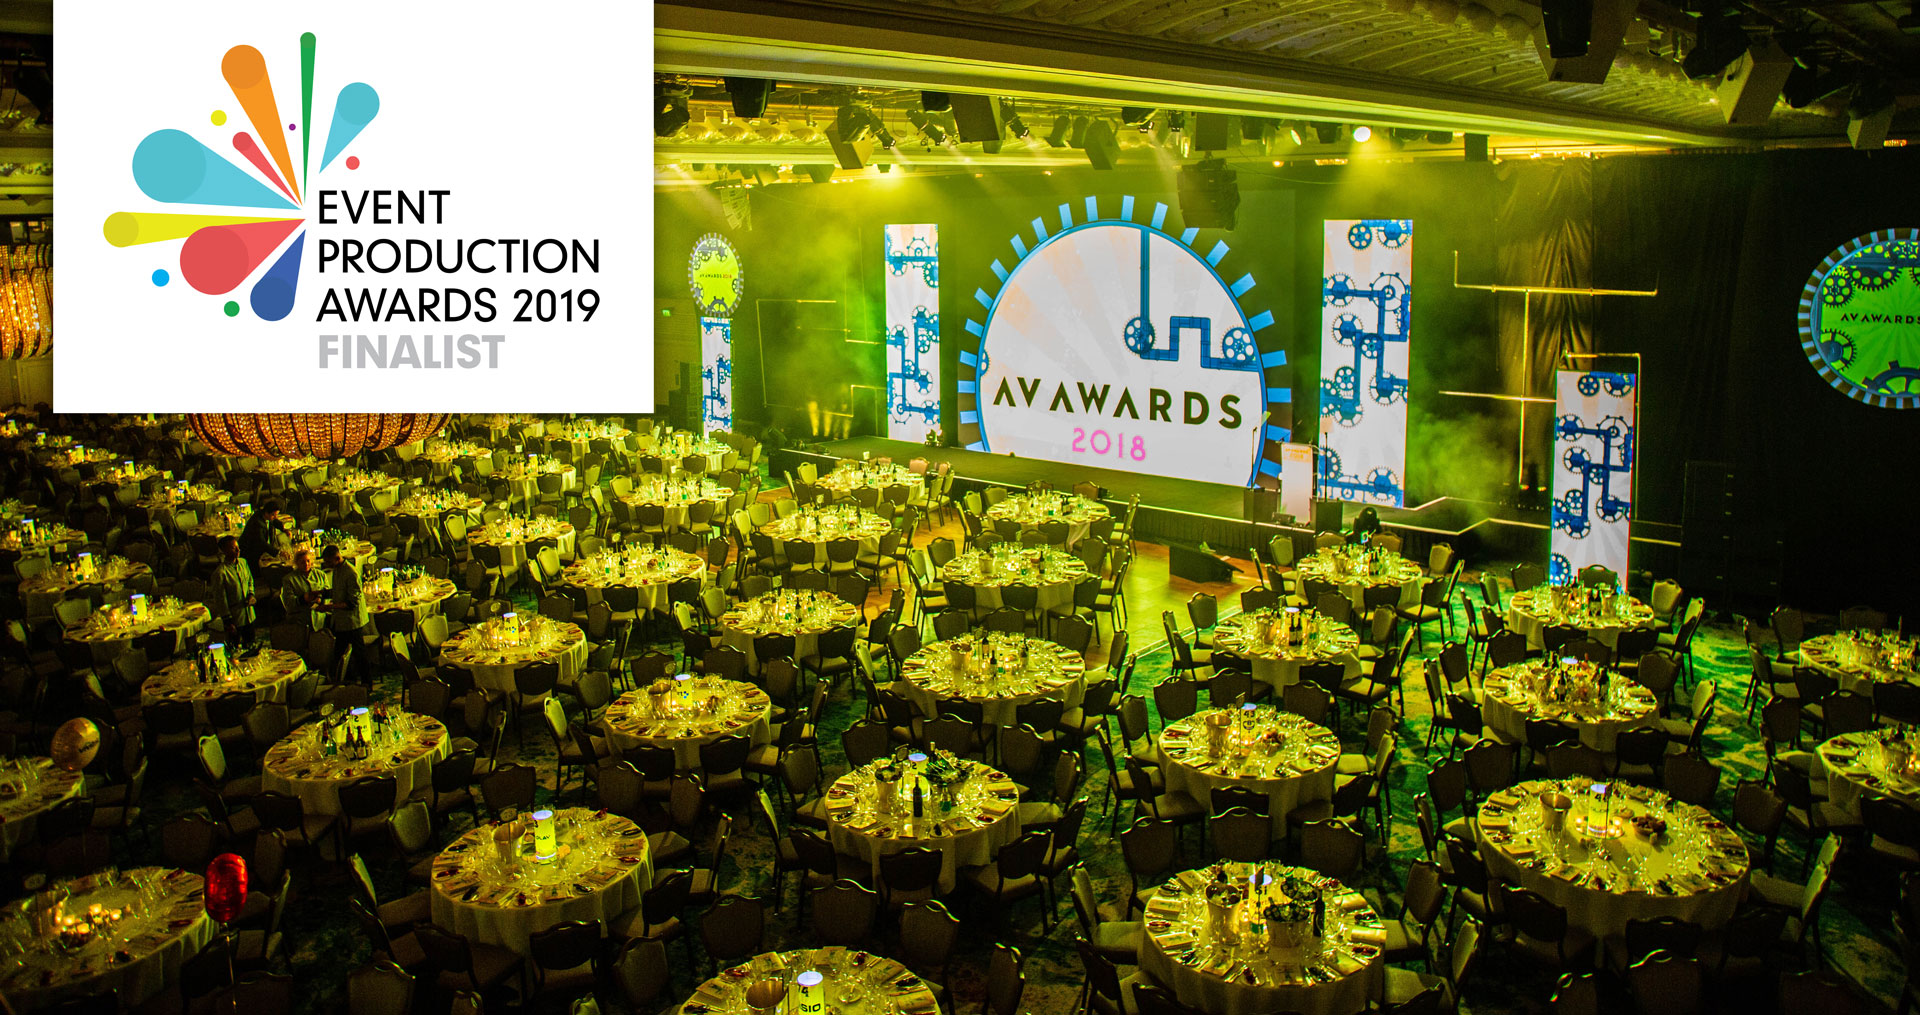 Event Production Awards 2019 Finalists!